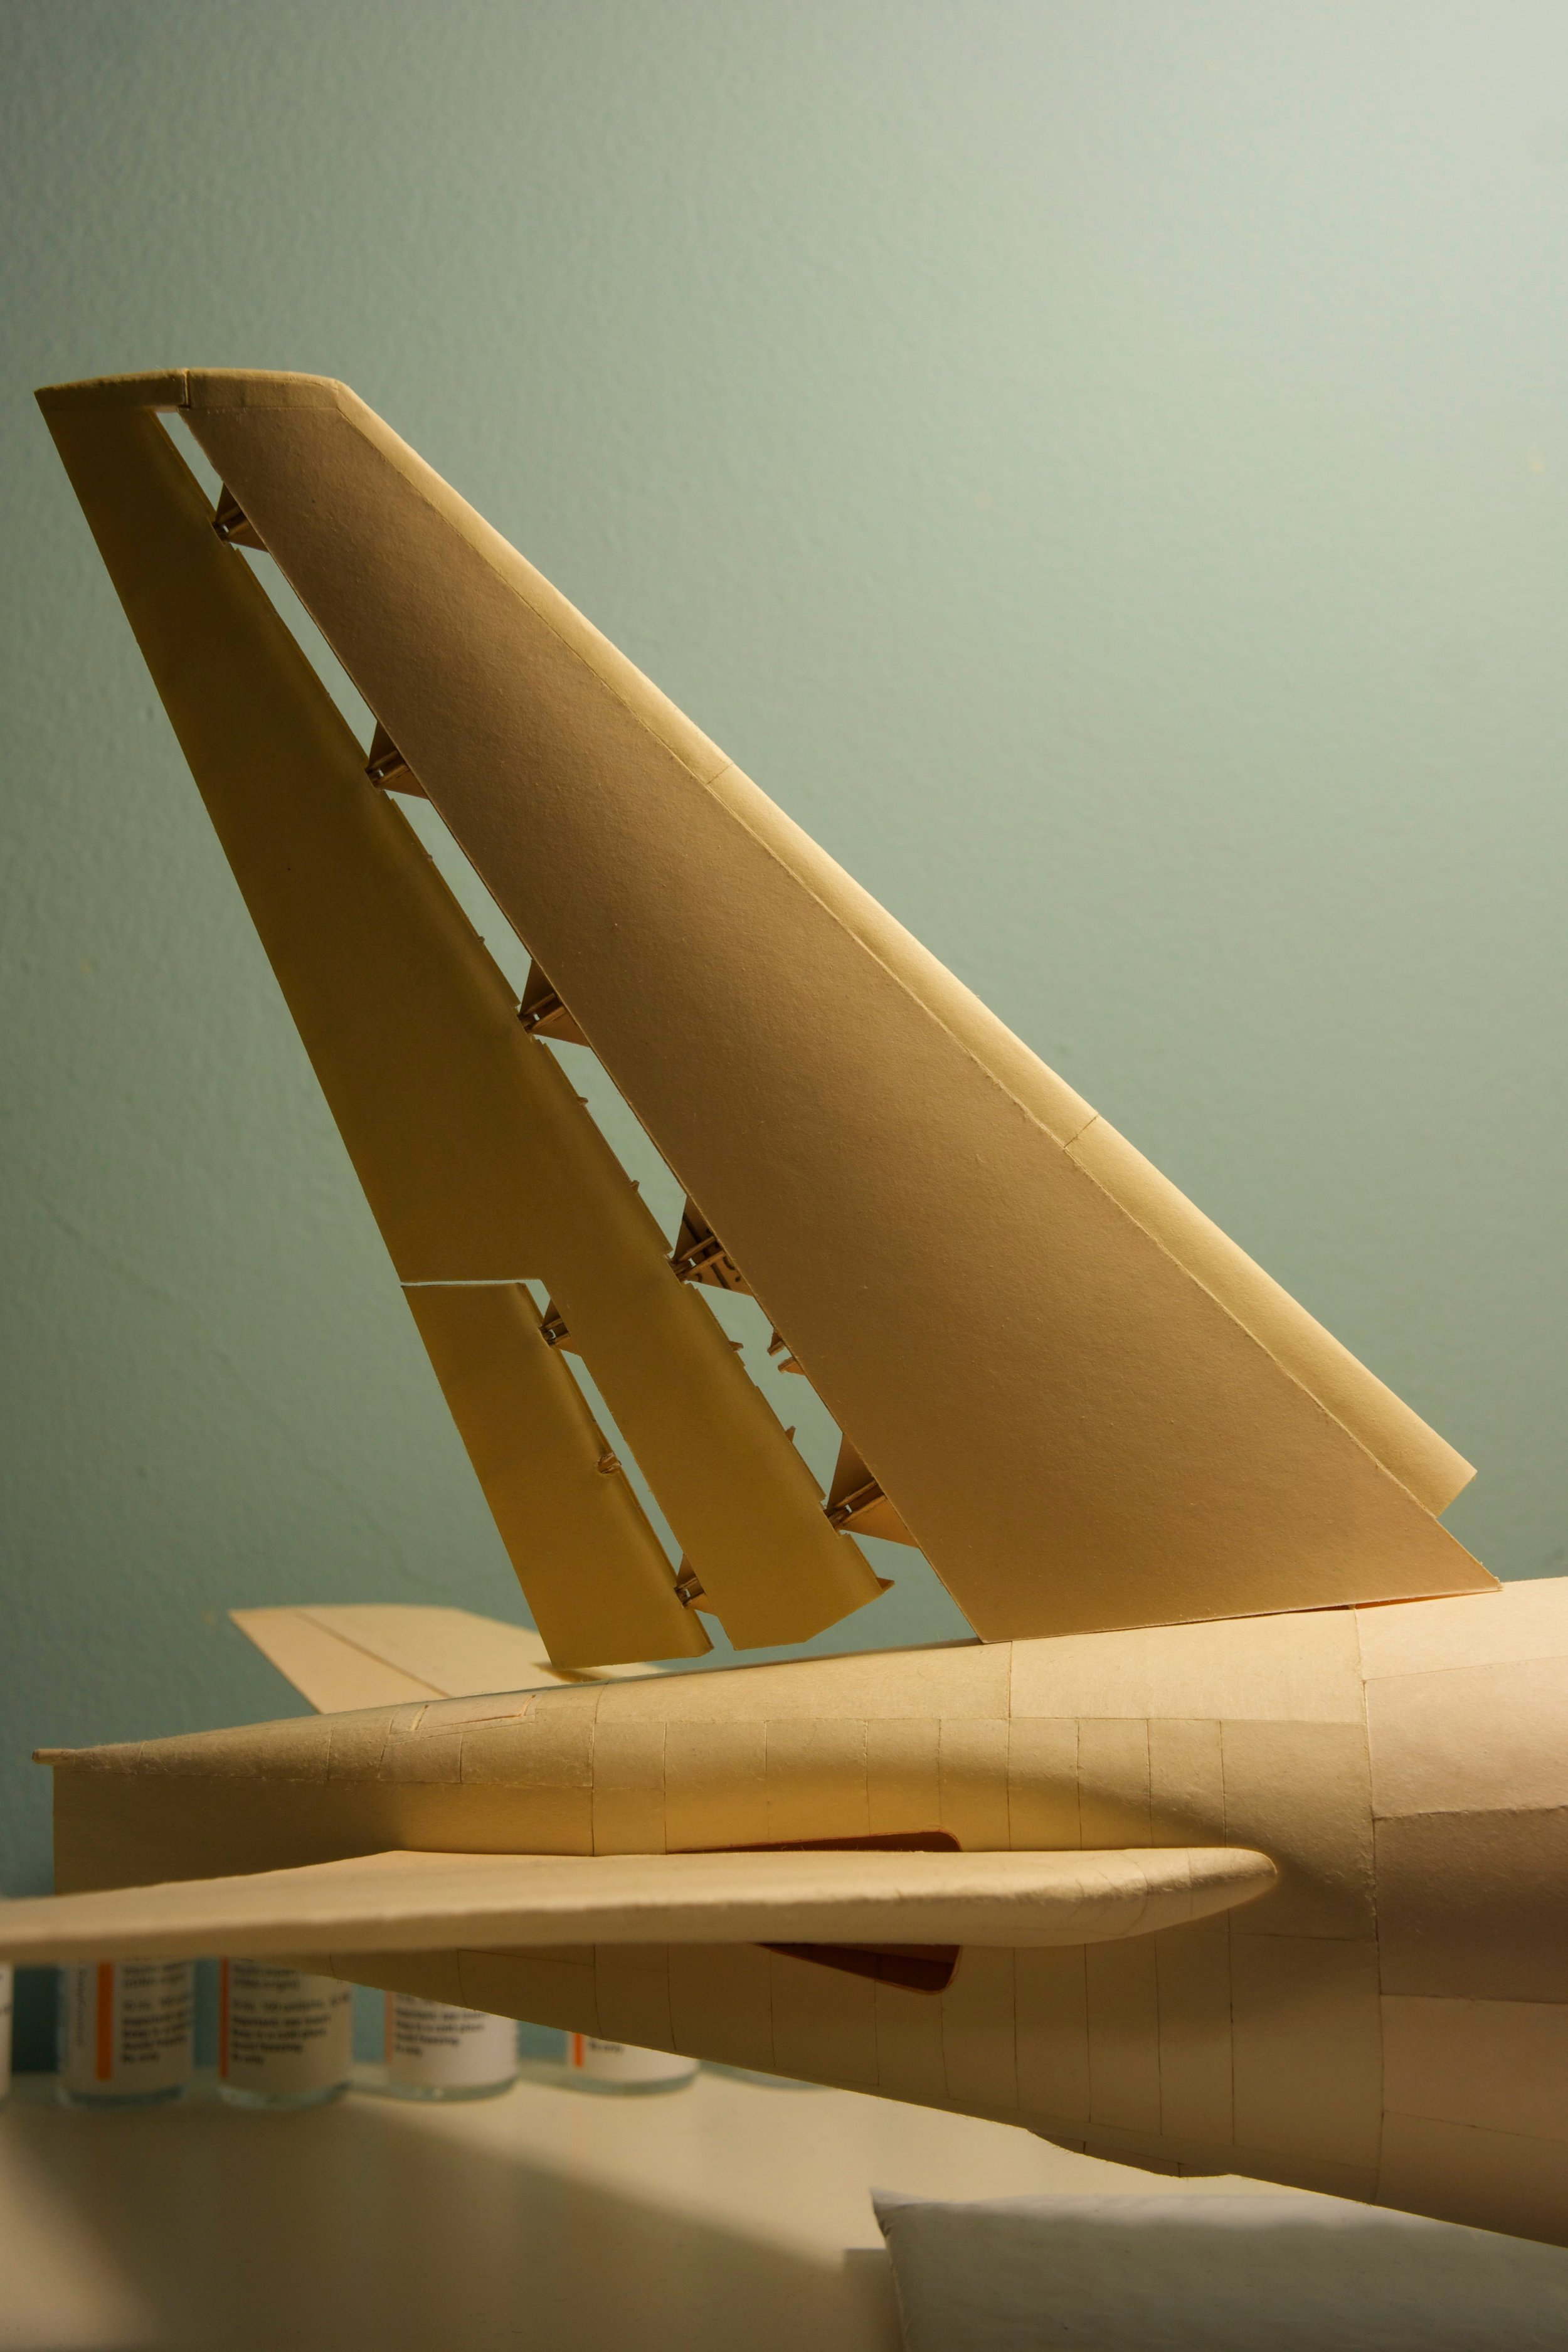 The new tail fin with most of the skin applied